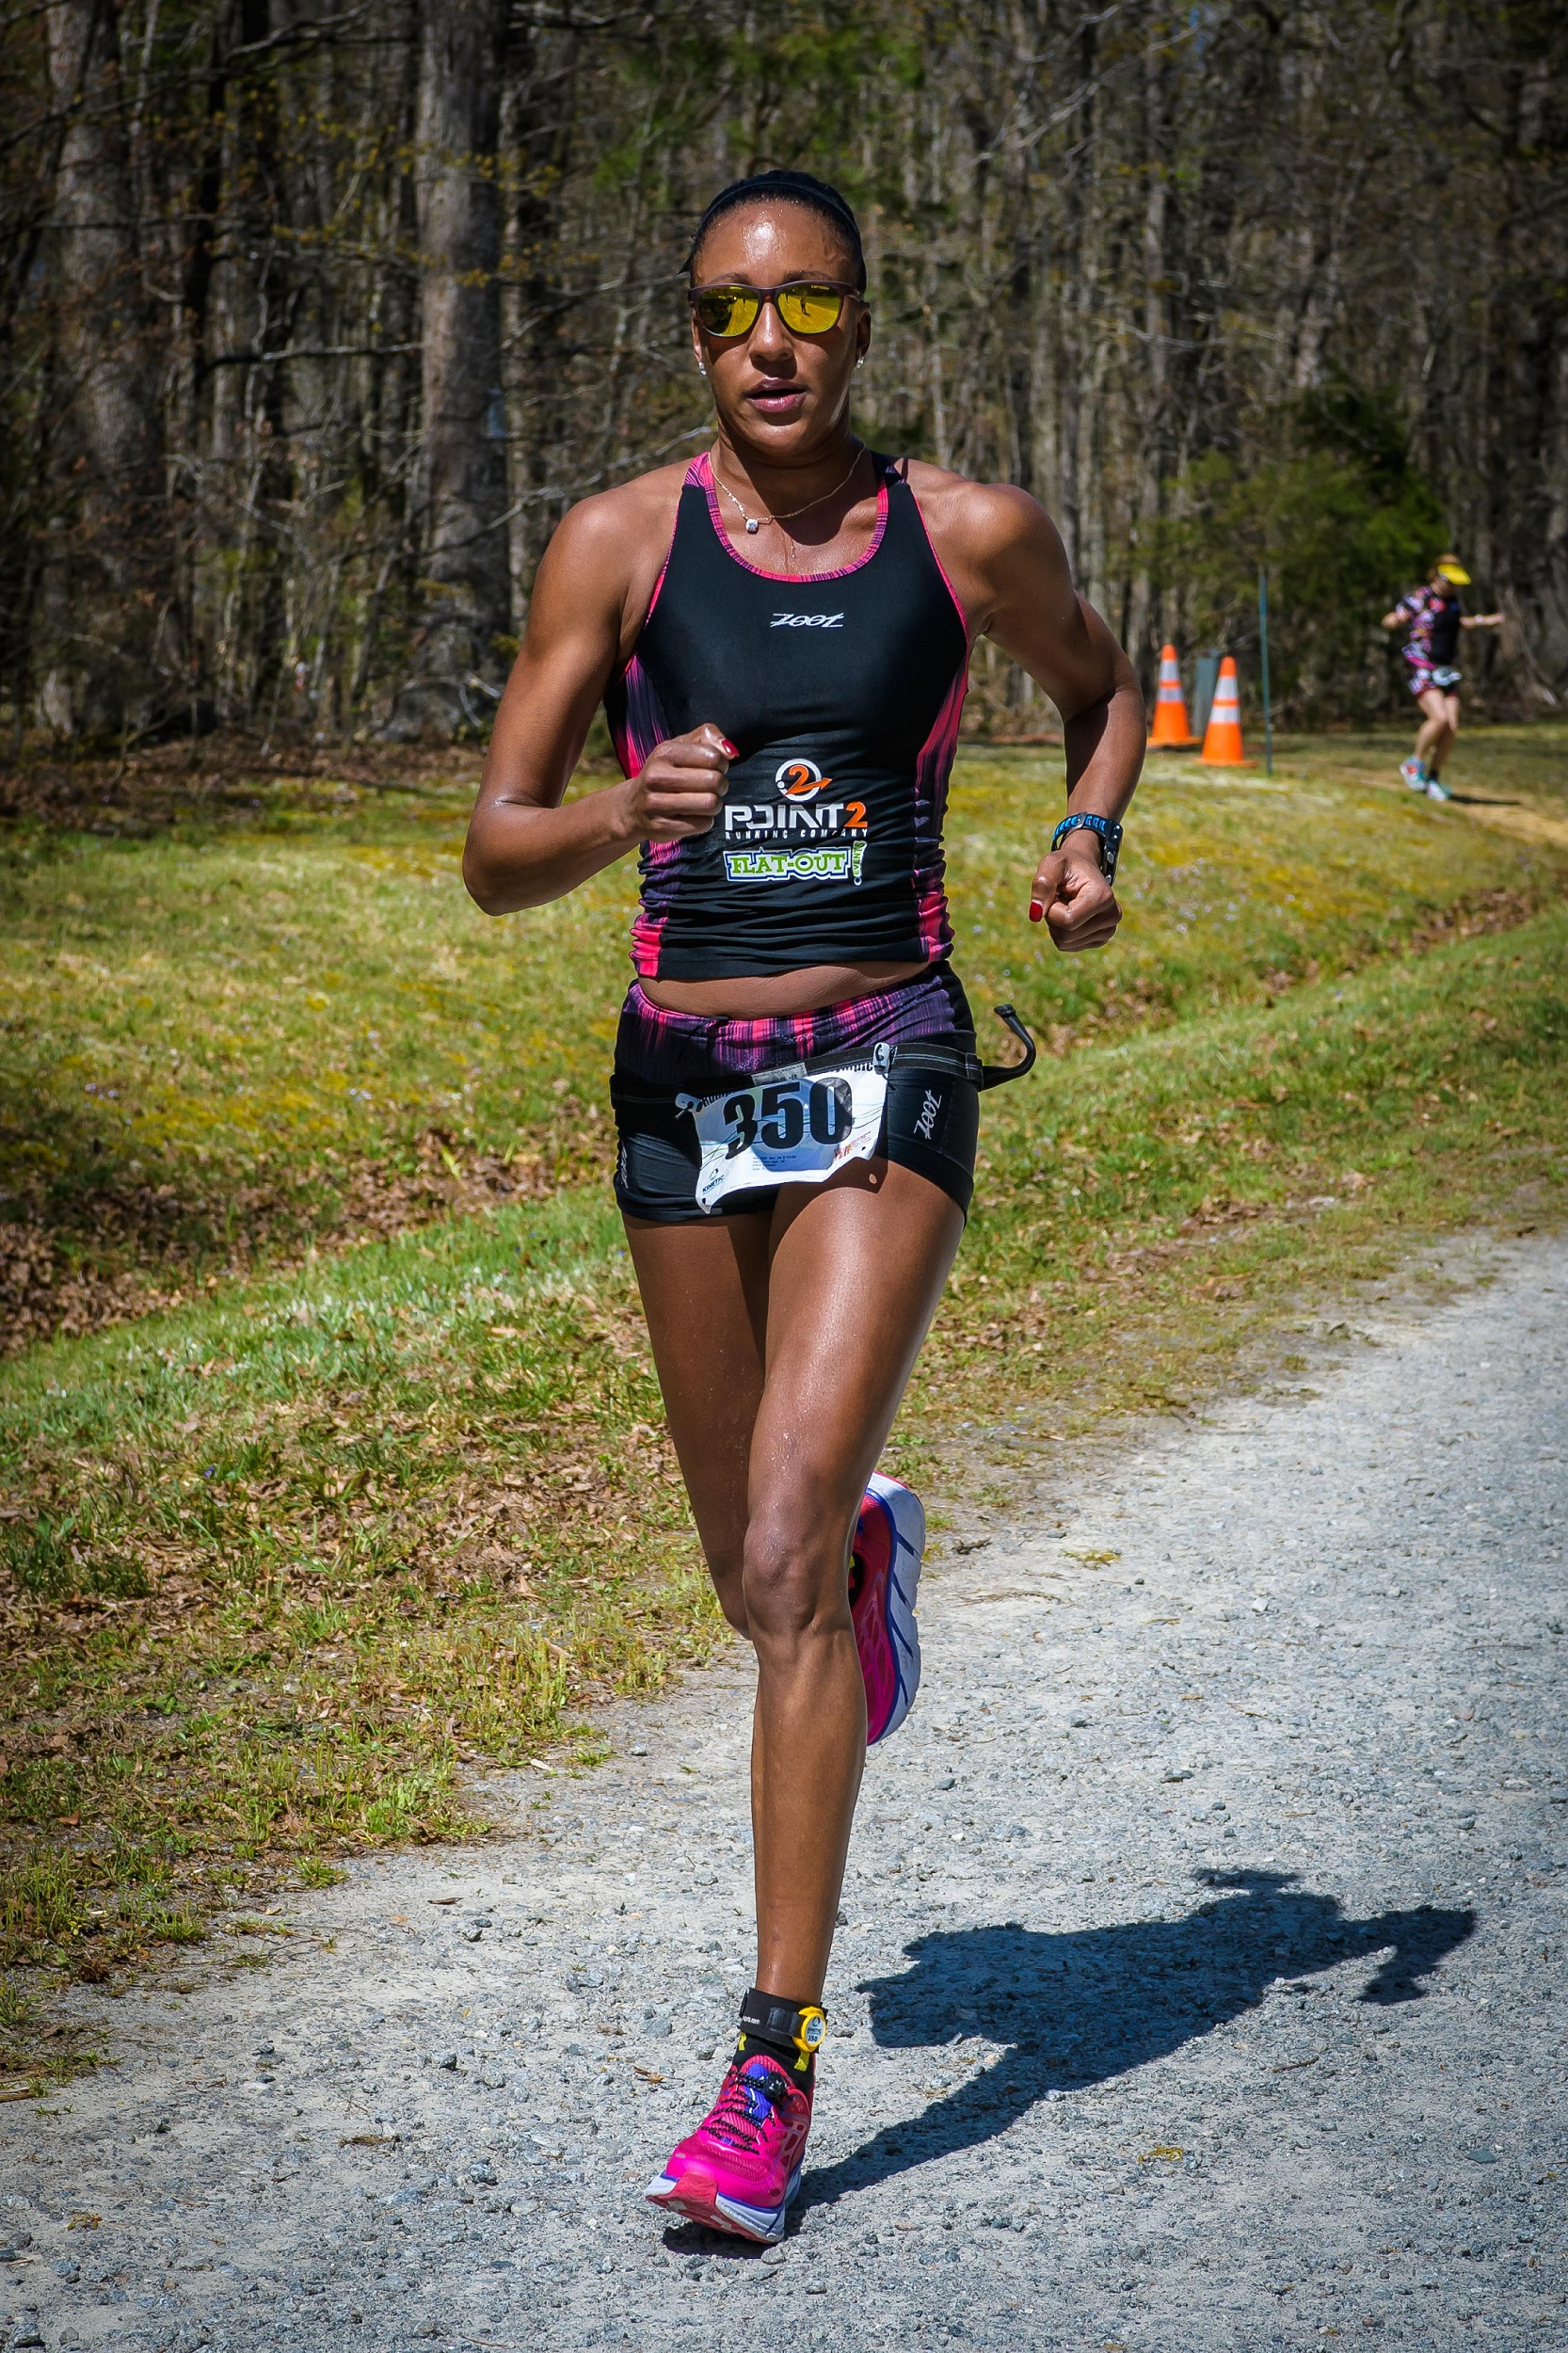 Sika Henry, the first black american woman professional triathlete